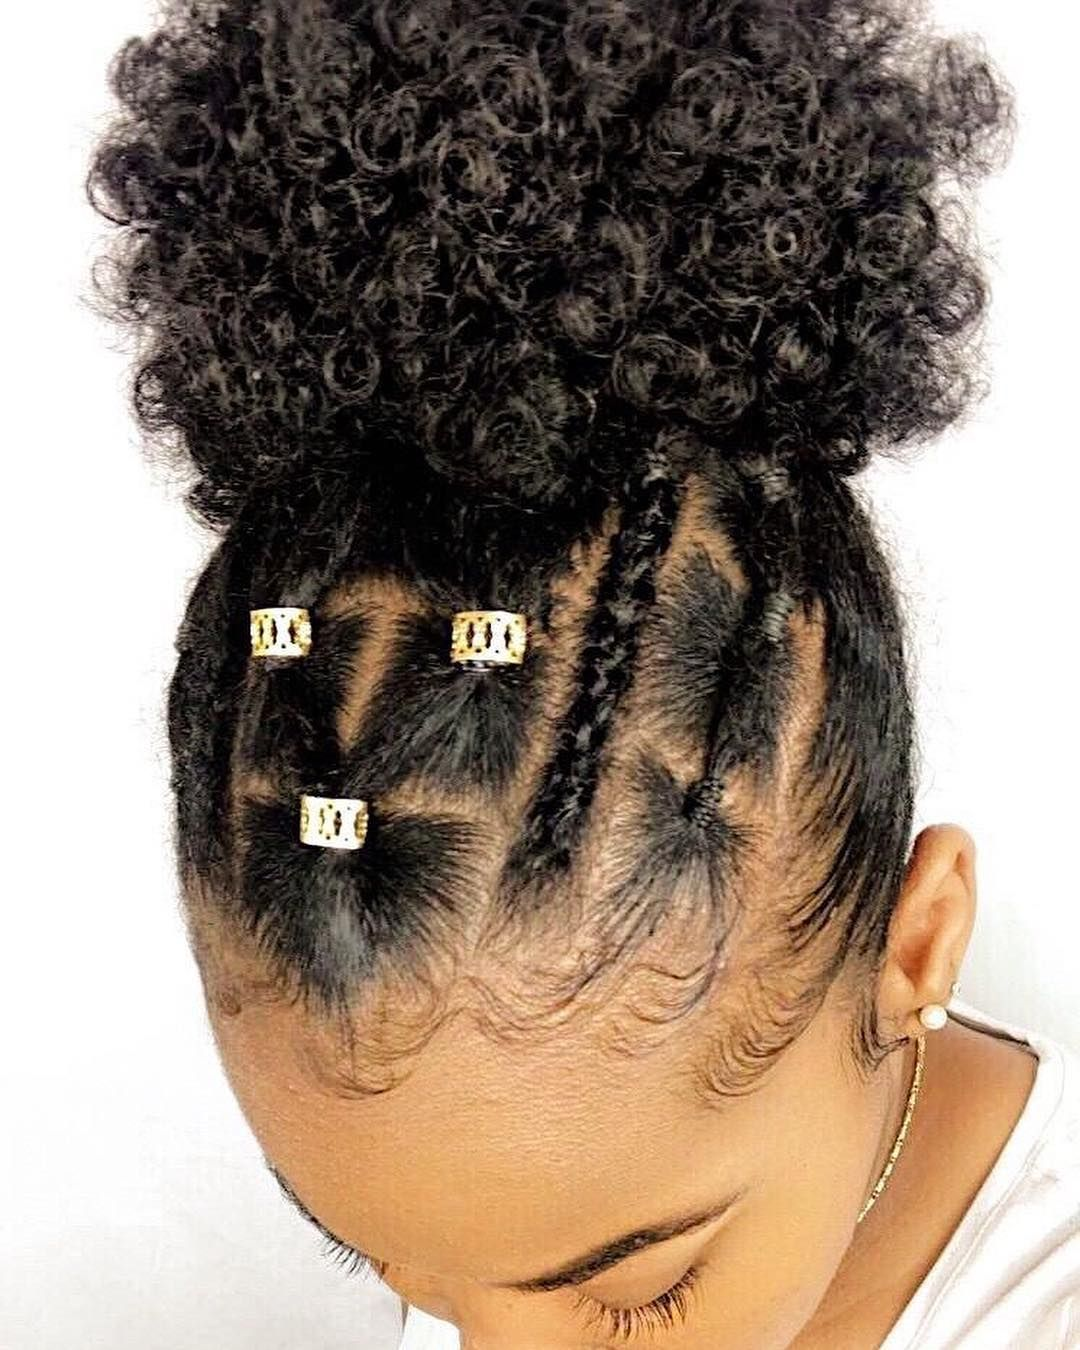 Pin By Gislrjyjdyfene Silcbsgjxtcva D On Natural Hair Styles Protective Hairstyles For Natural Hair Girls Natural Hairstyles Natural Hair Styles Easy